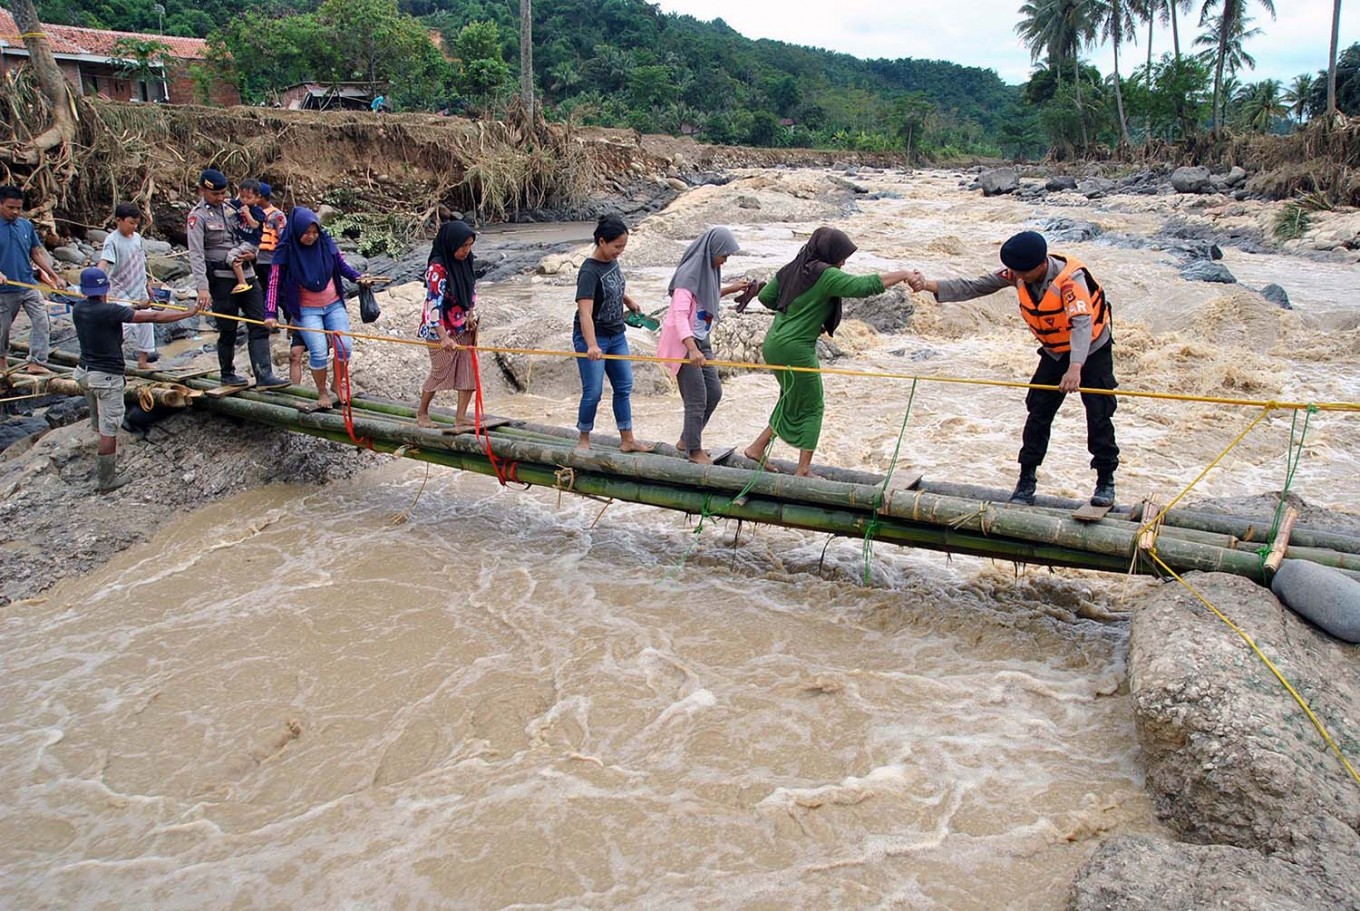 Work together: A police officer helps residents cross a makeshift emergency bridge over the Cidurian River in Bogor, West Java, 